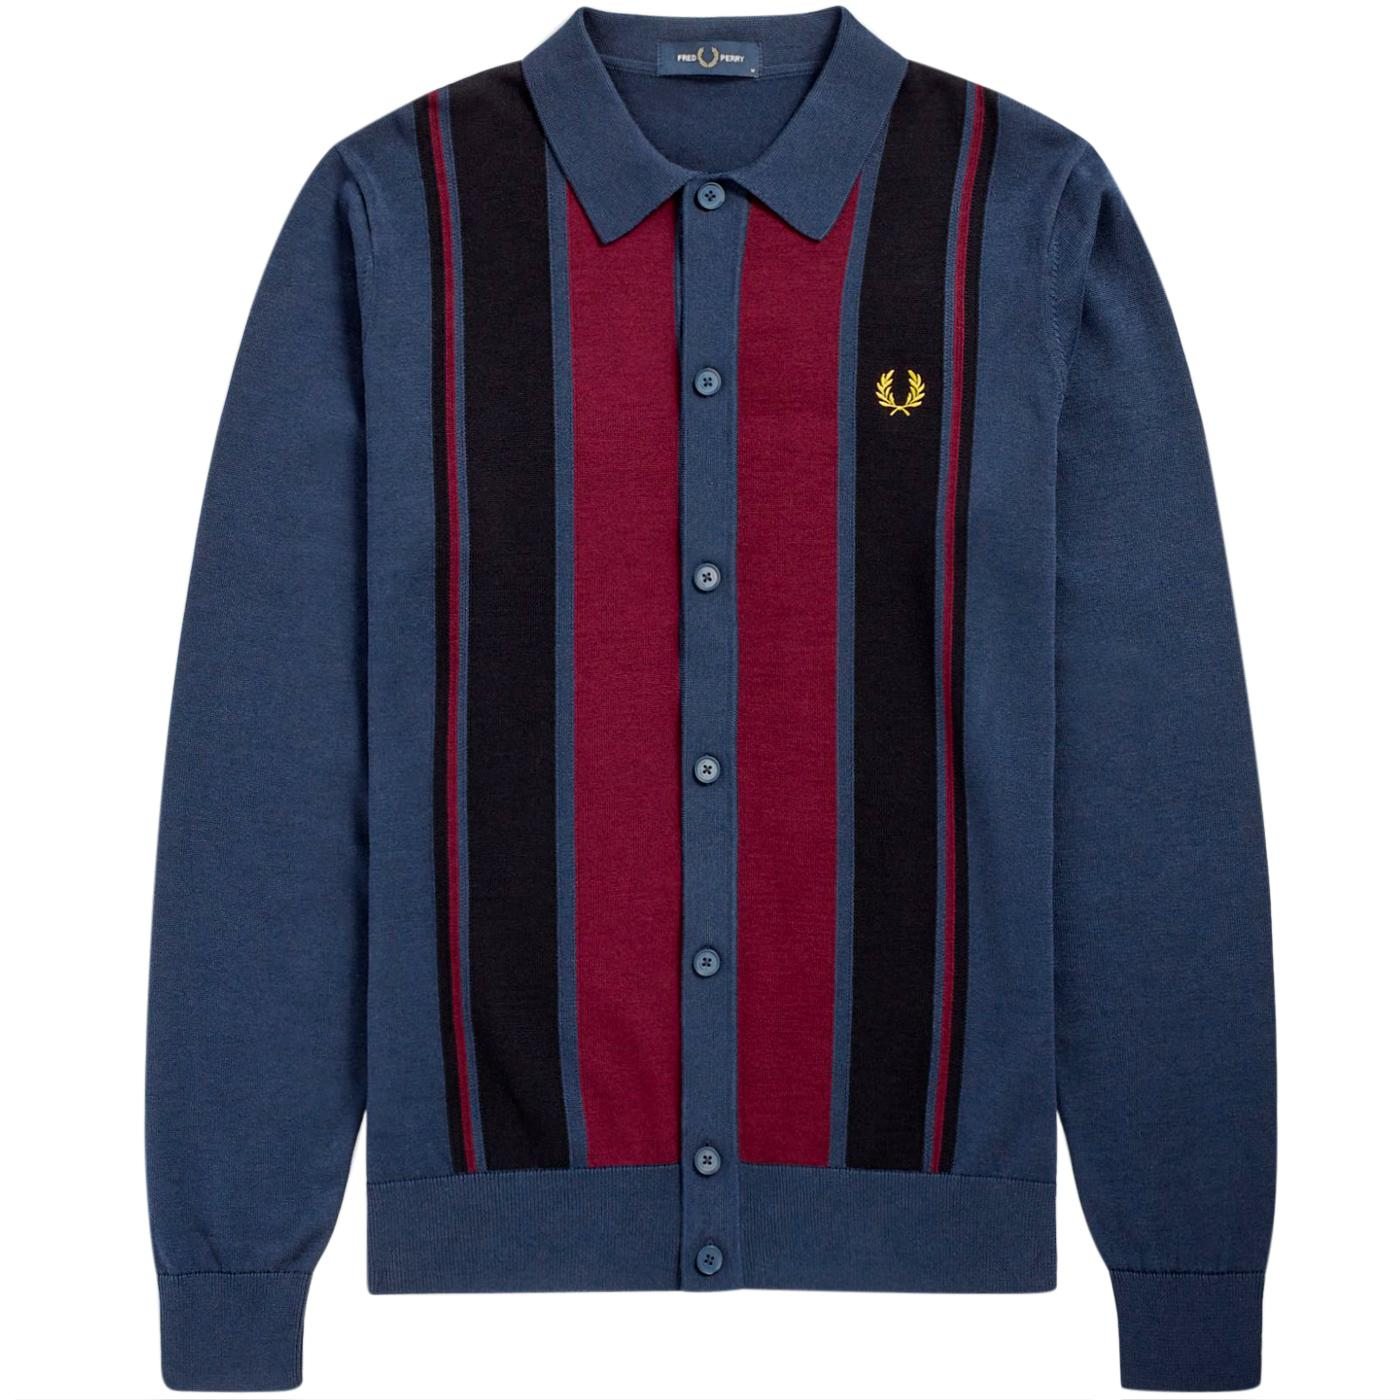 FRED PERRY K9545 60s Mod Colour Block Knitted Polo